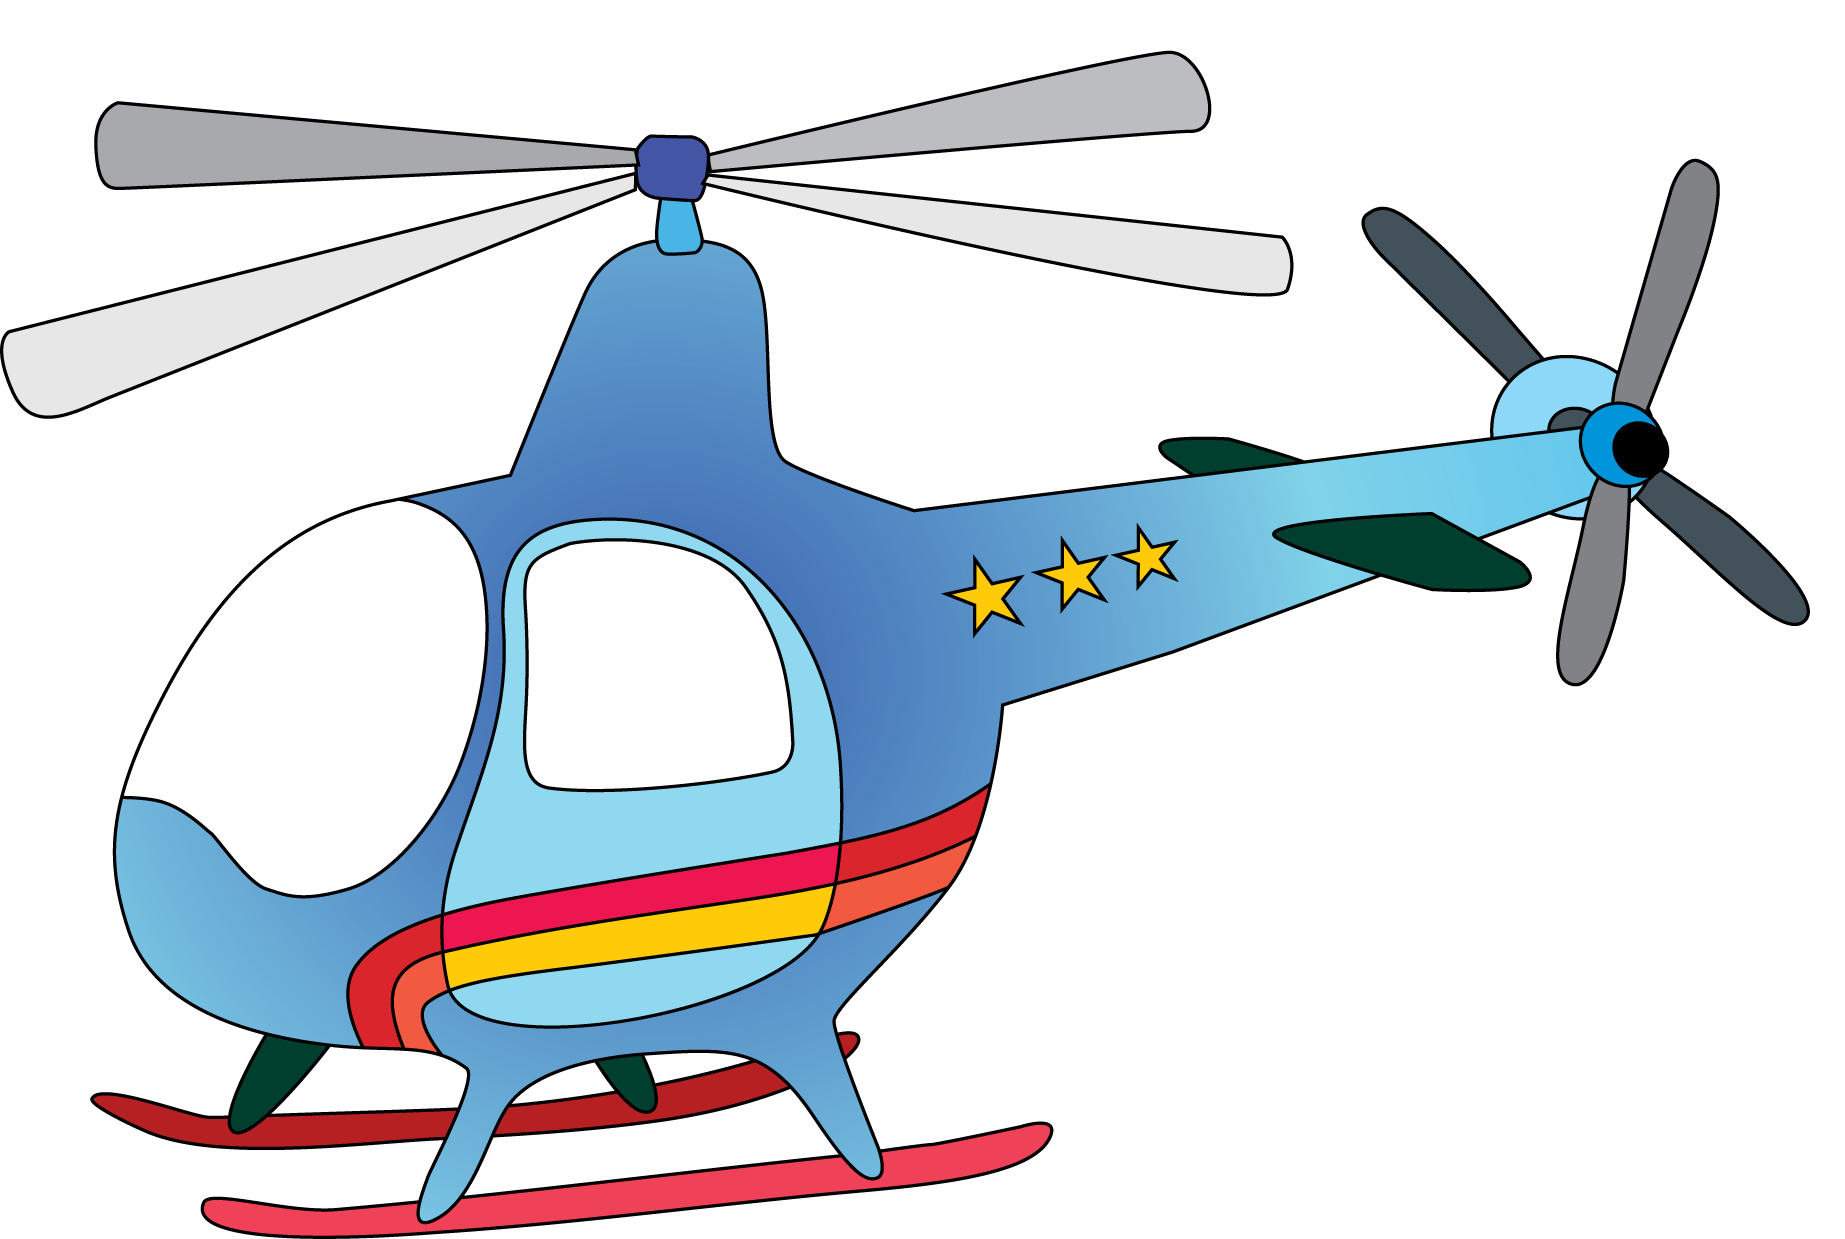 Helicopter clipart image banner black and white Cute Airplane Clip Art   have about files nov ... banner black and white